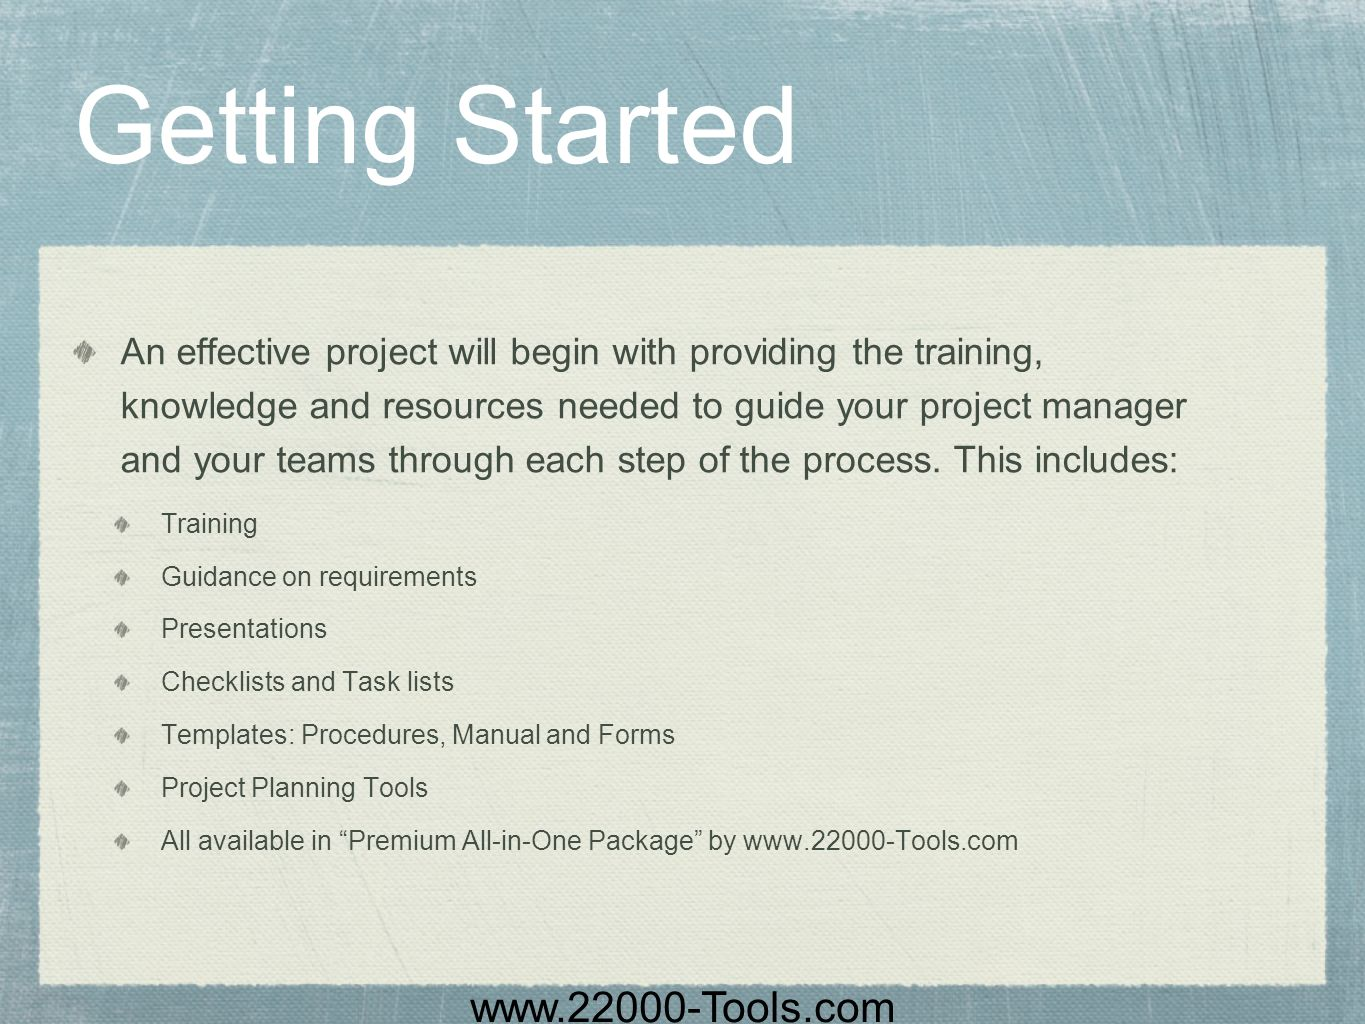 www.22000-Tools.com Getting Started An effective project will begin with providing the training, knowledge and resources needed to guide your project